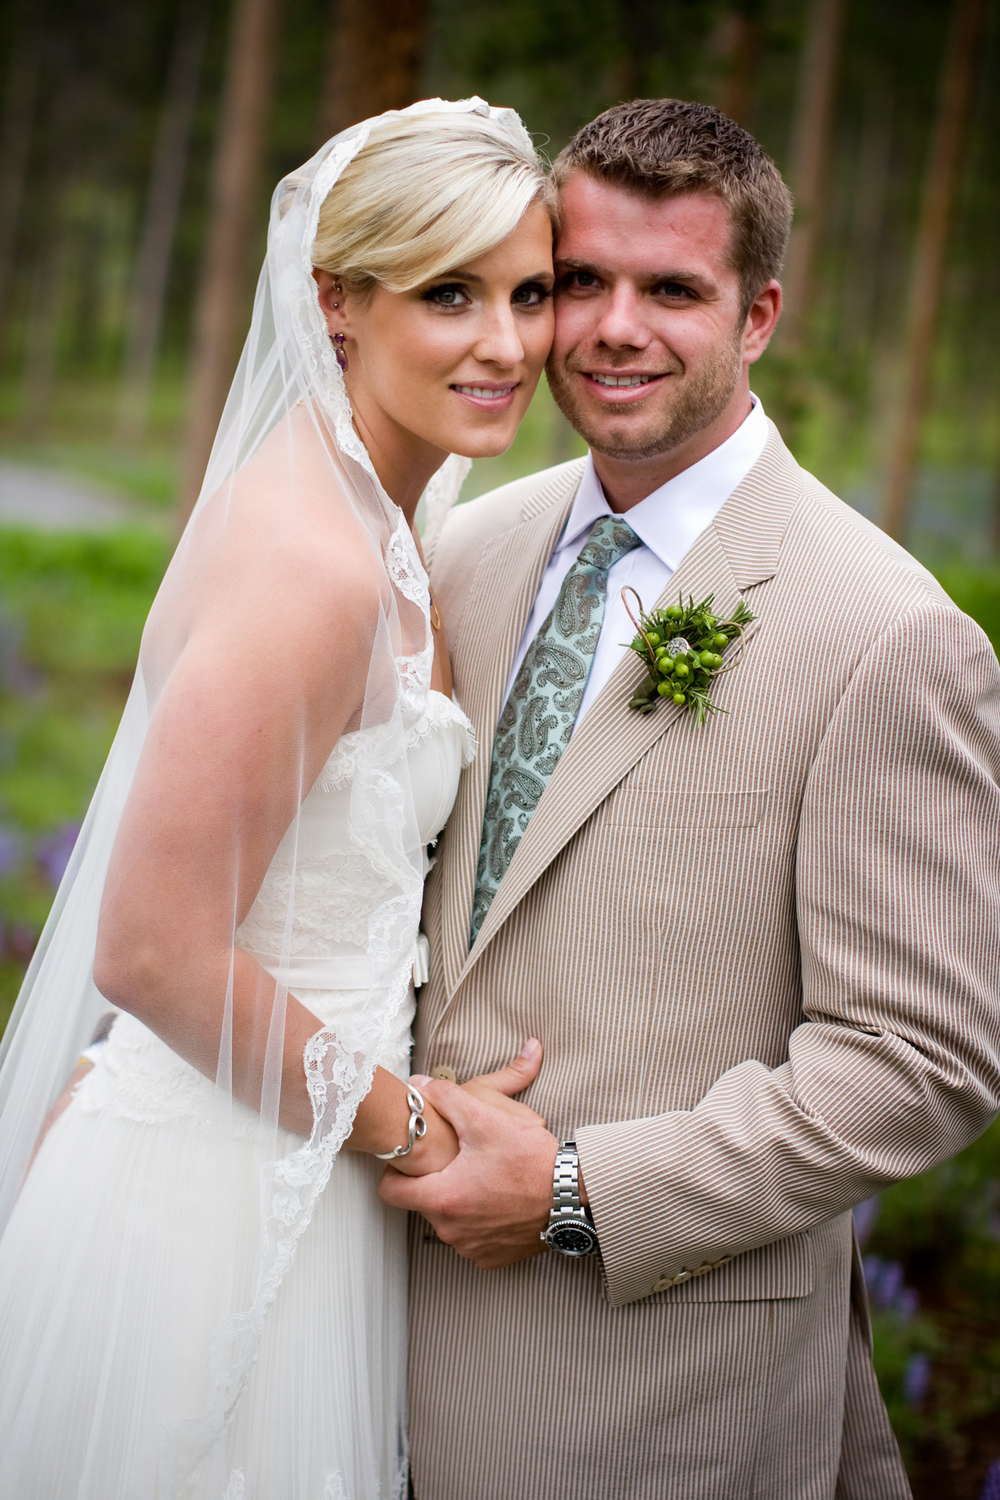 Devils_Thumb_Ranch_Wedding_025.JPG